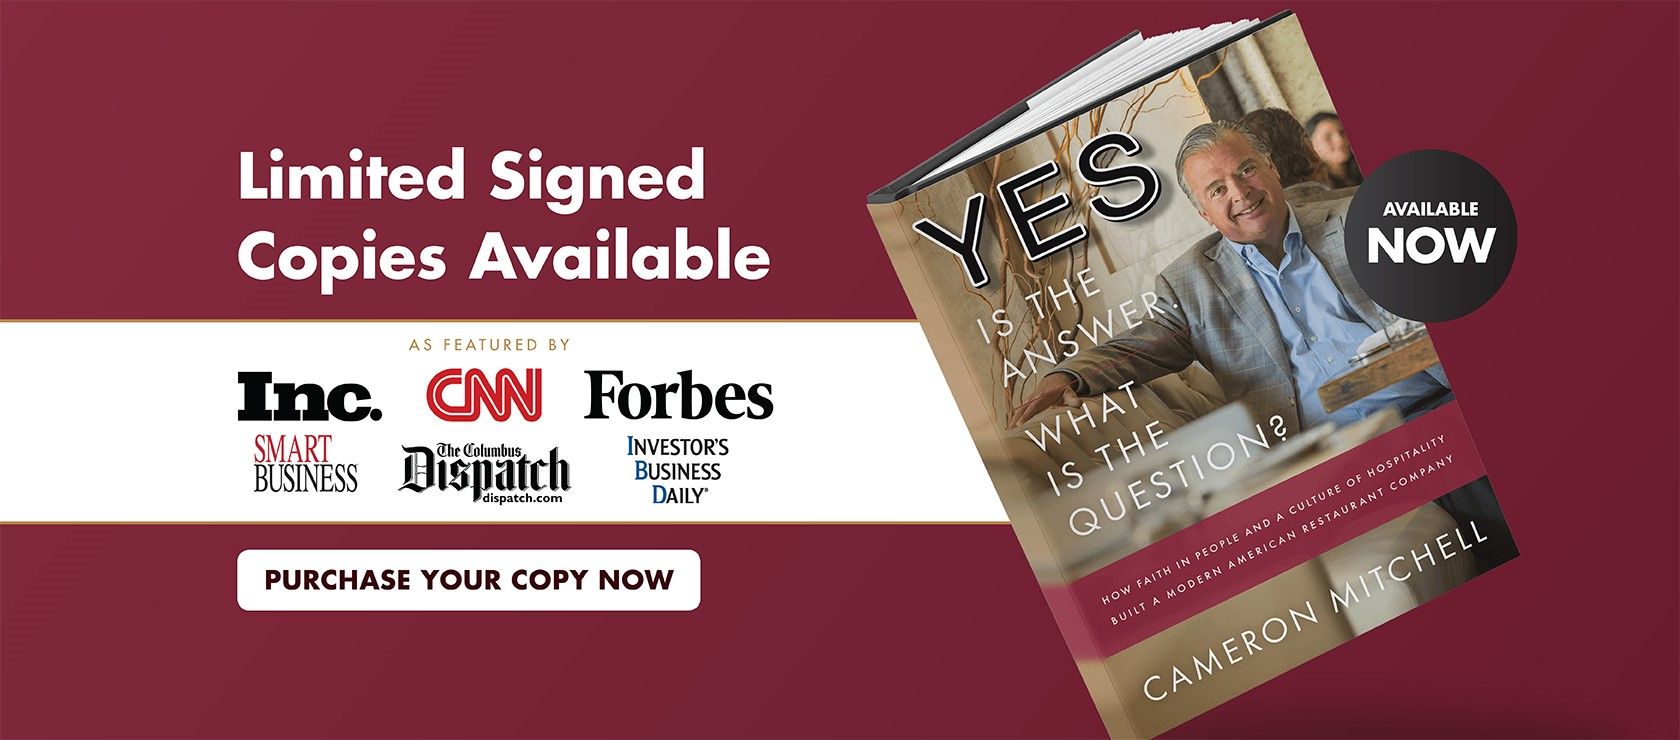 Purchase your copy now of Cameron's book. Limited signed copies available.